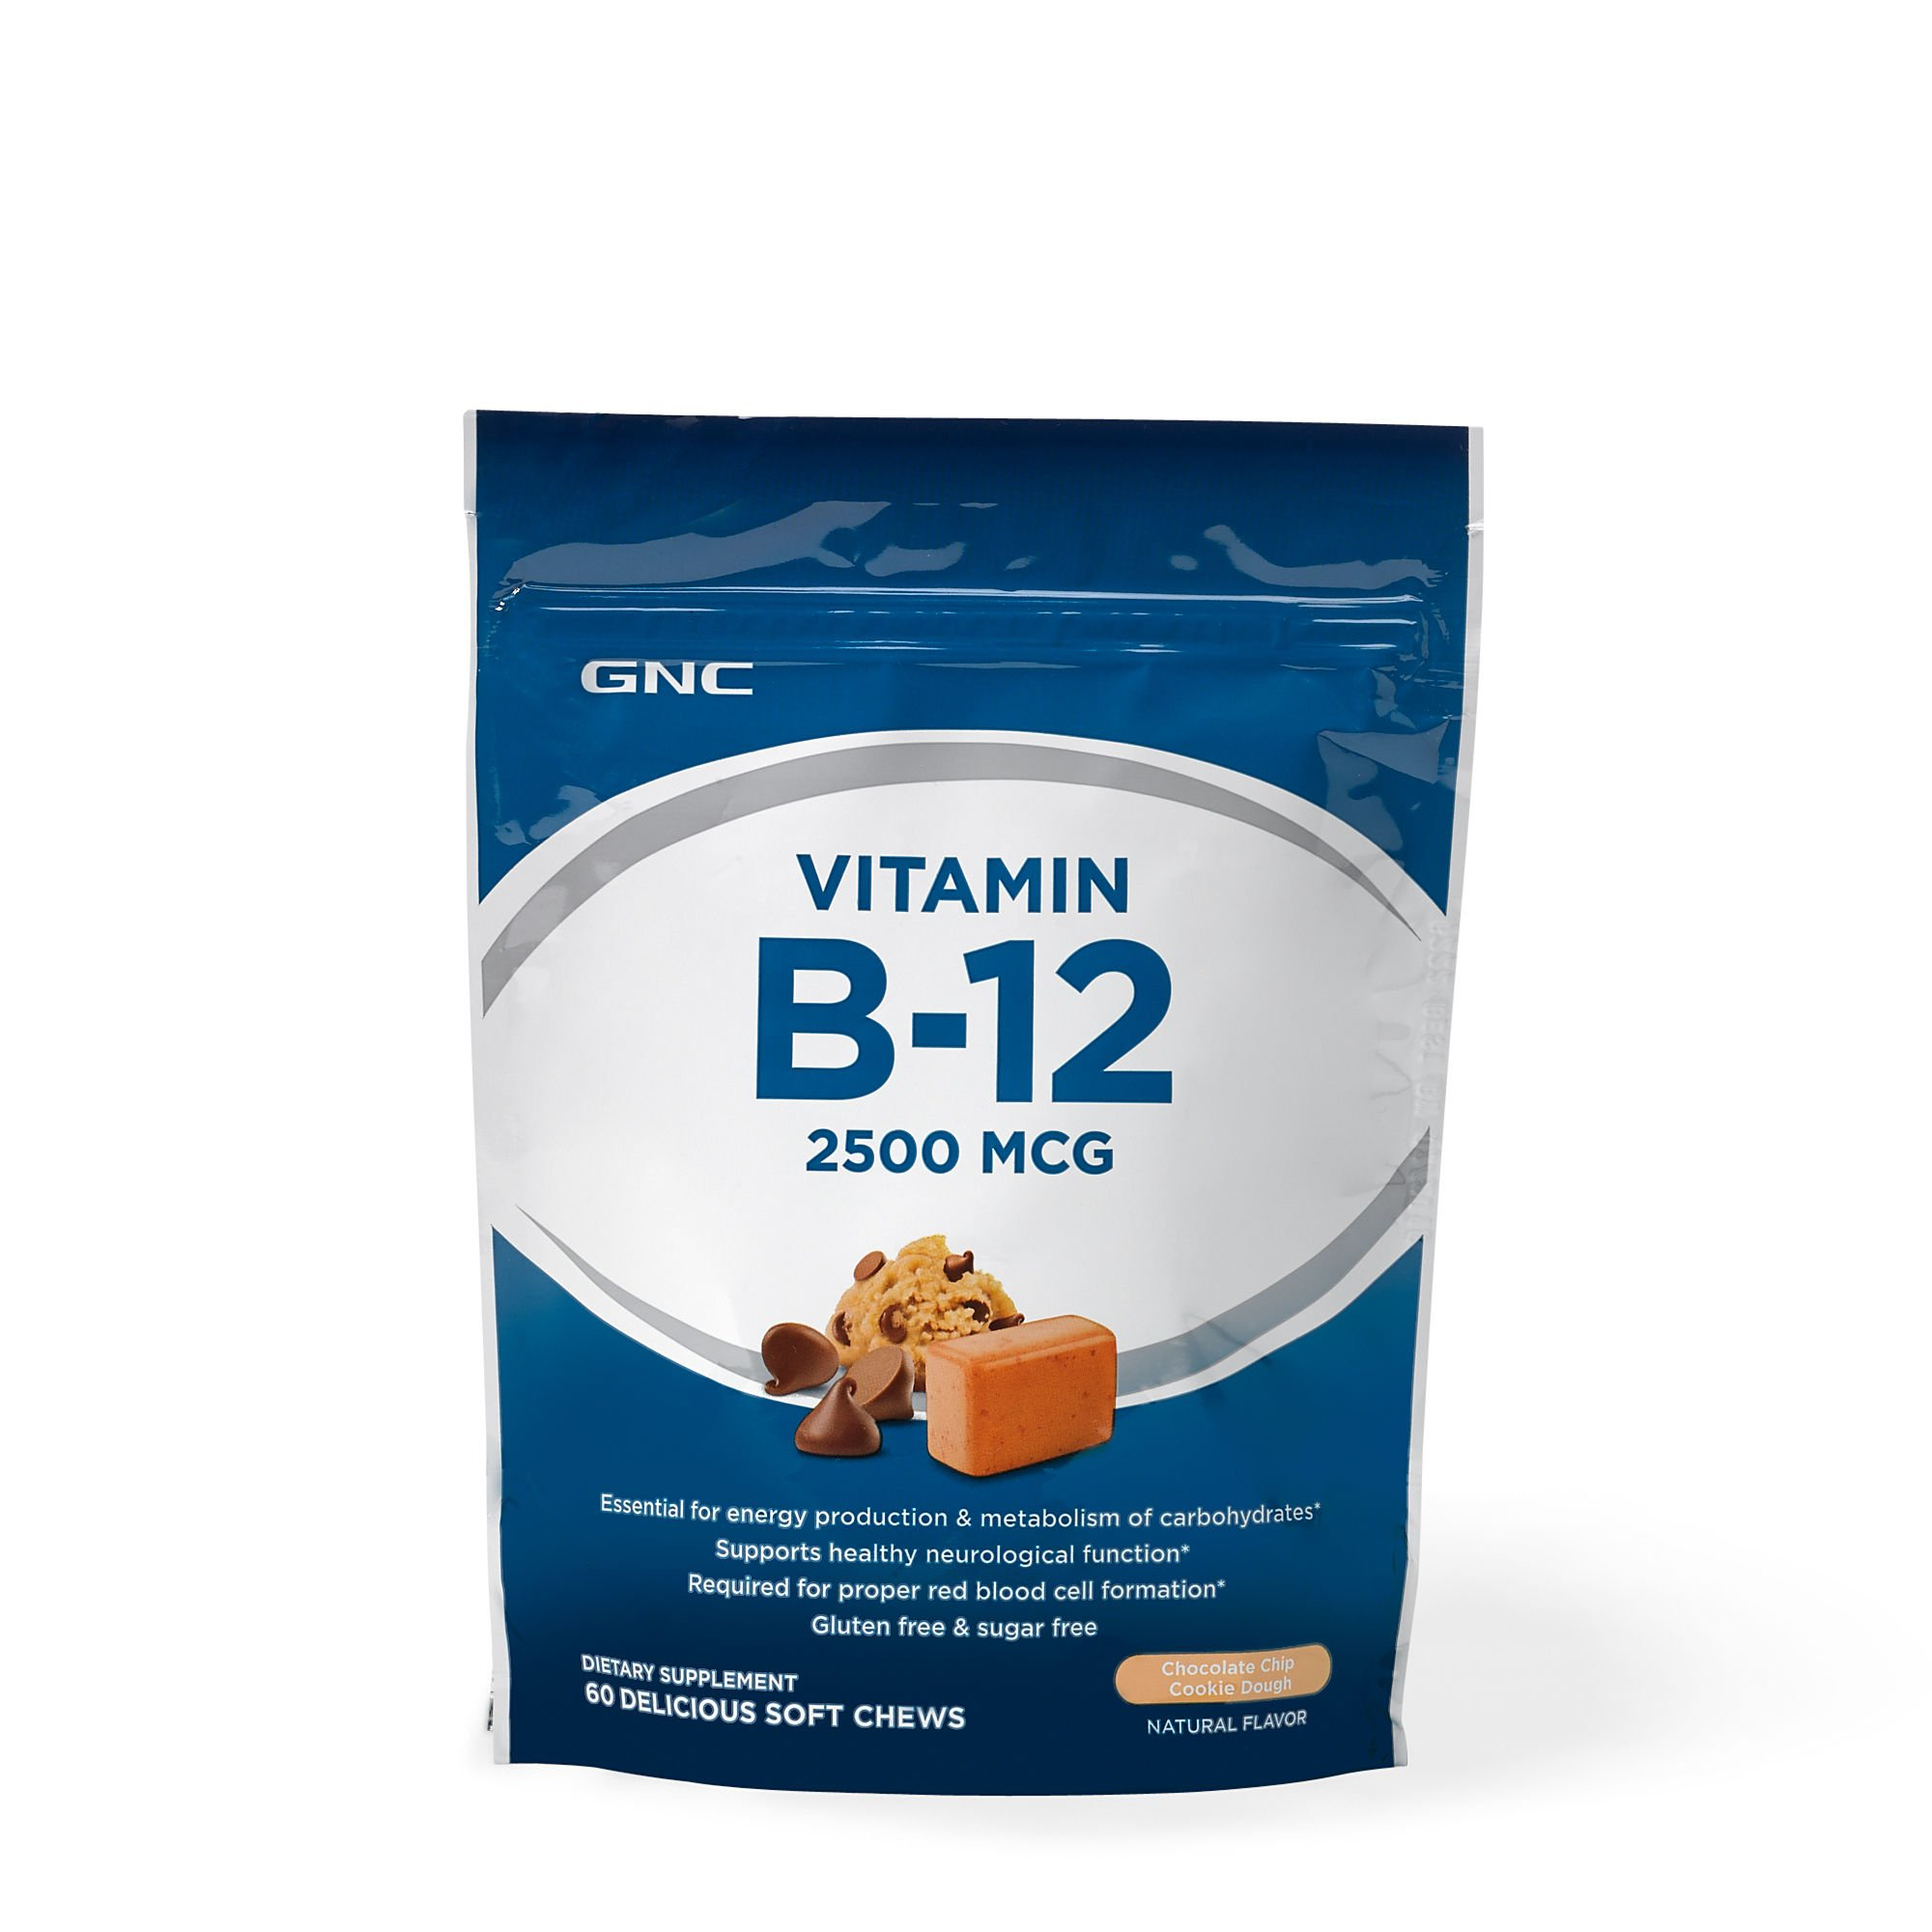 GNC Vitamin B-12 Soft Chew 2500mcg, Chocolate Chip Cookie Dough, 60 Chews